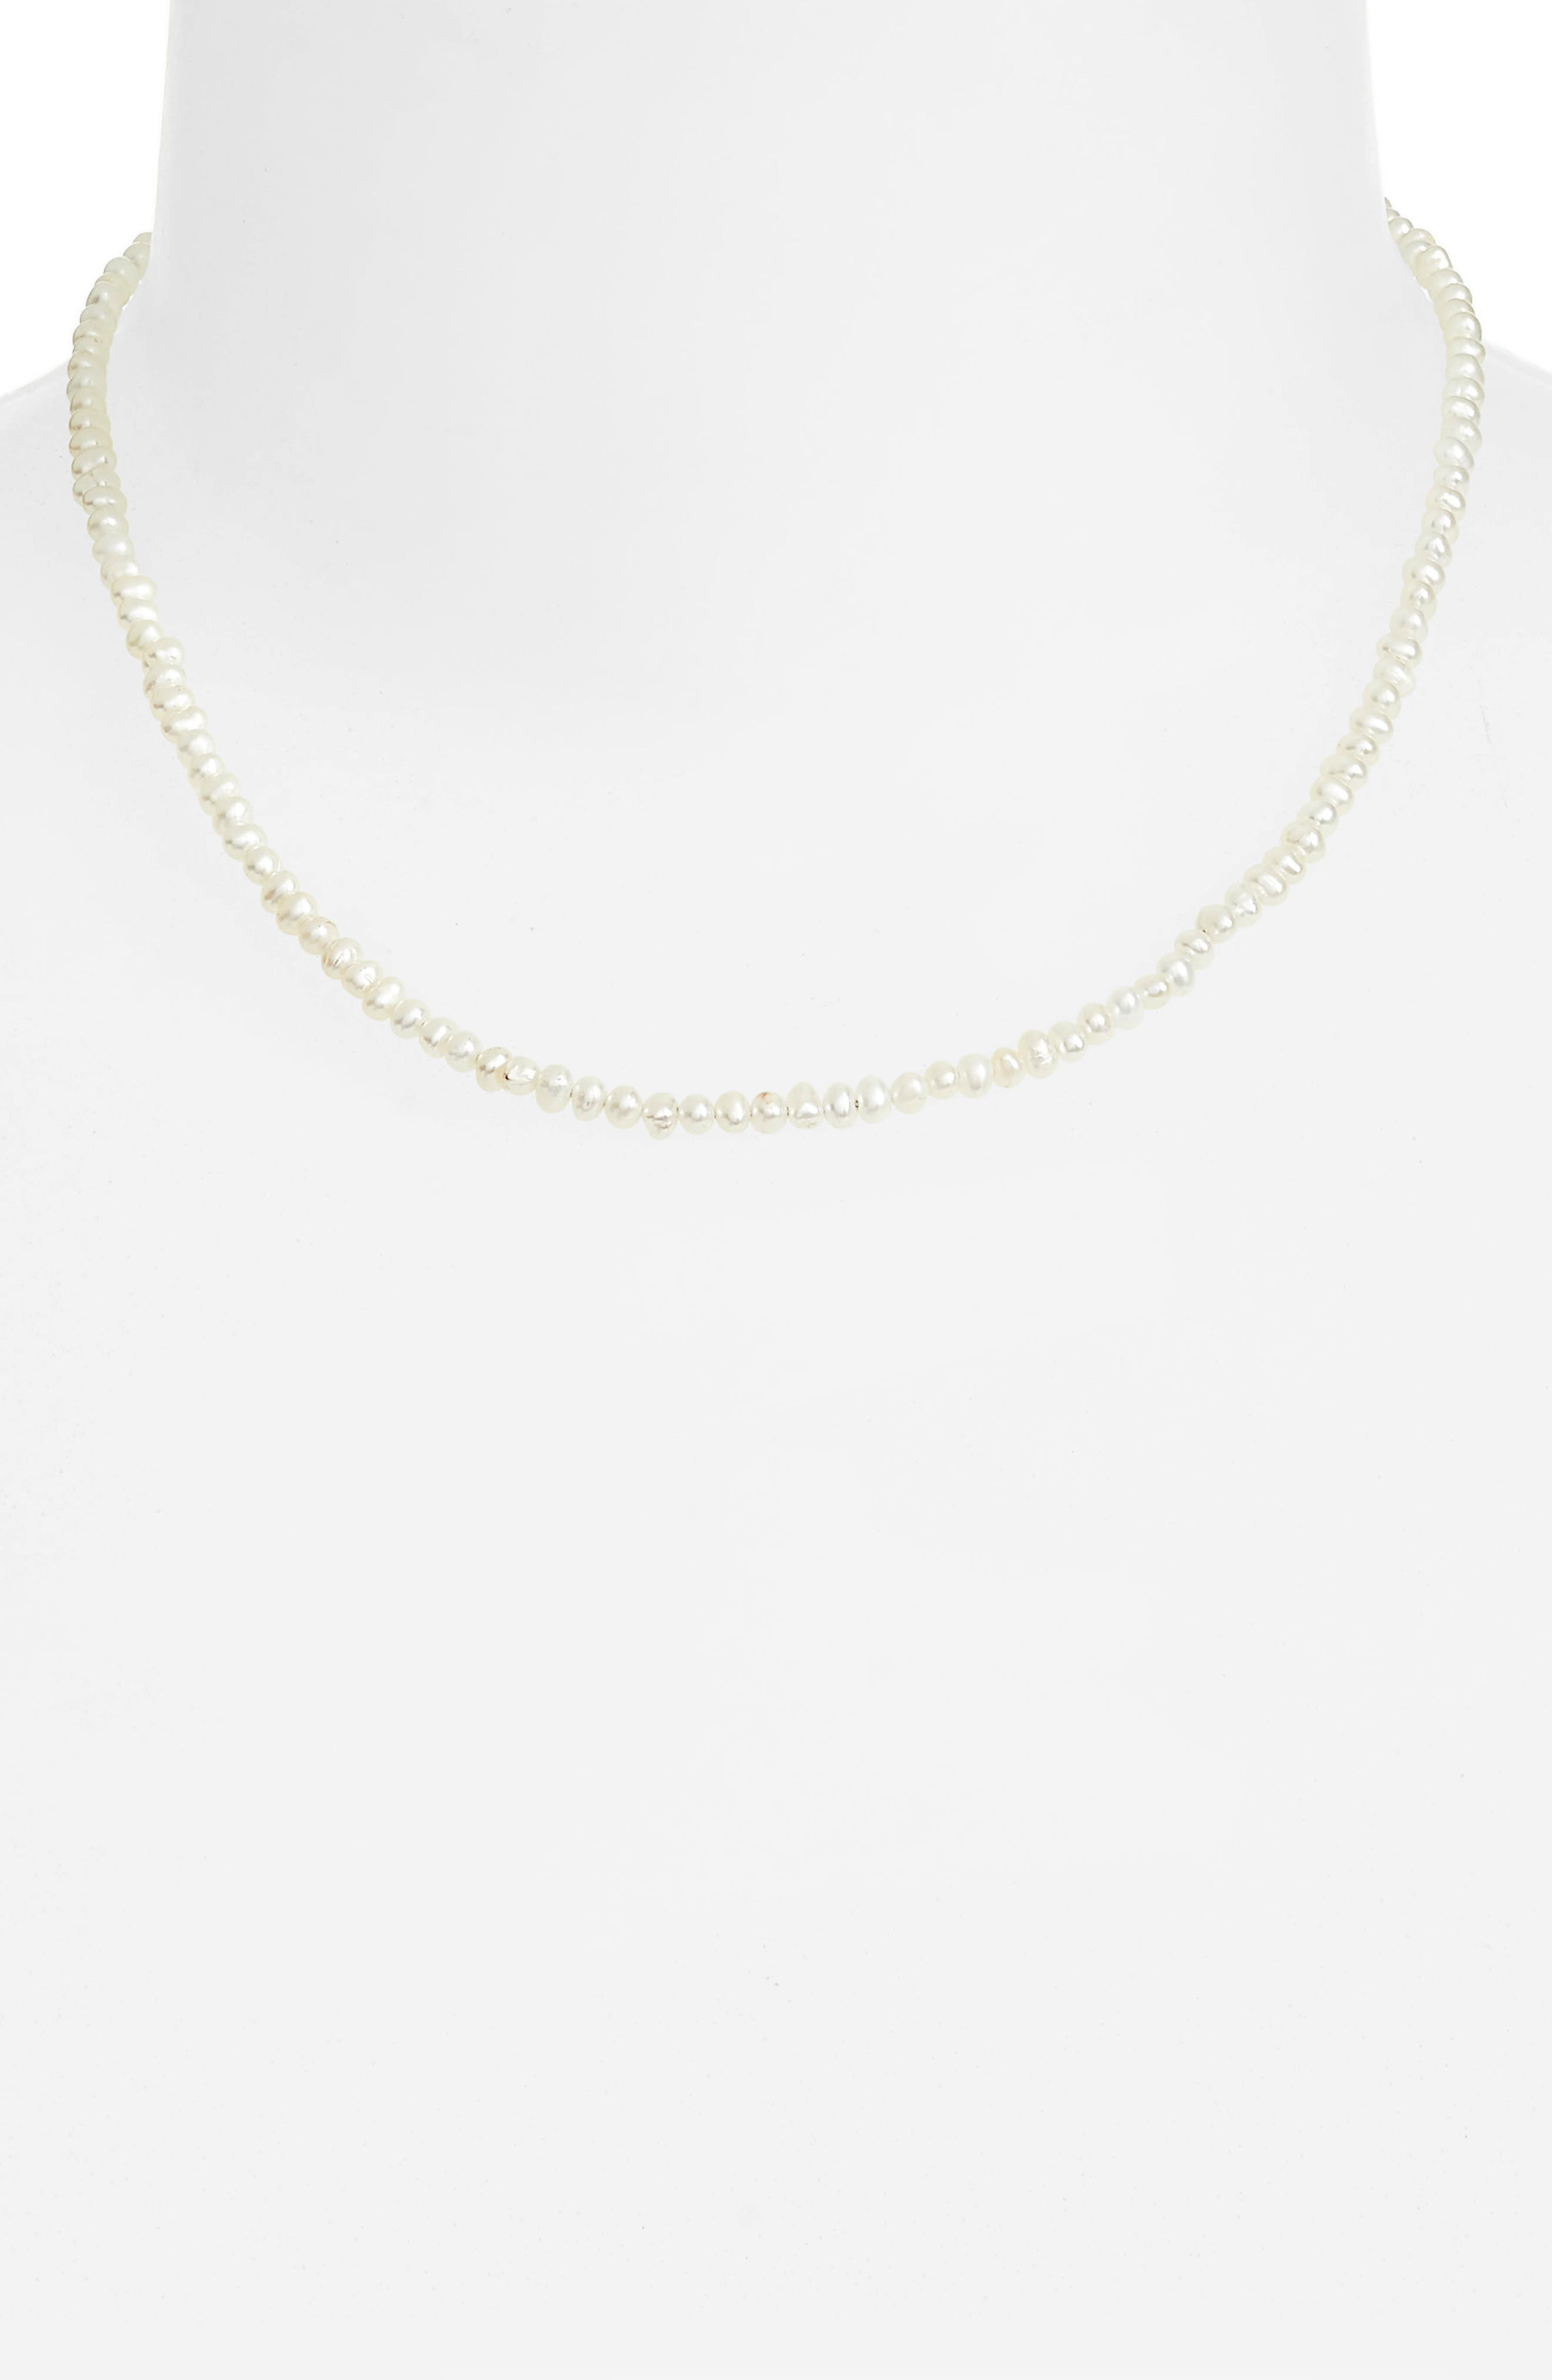 Seed Pearl Necklace,                             Alternate thumbnail 3, color,                             STERLING SILVER/ PEARL